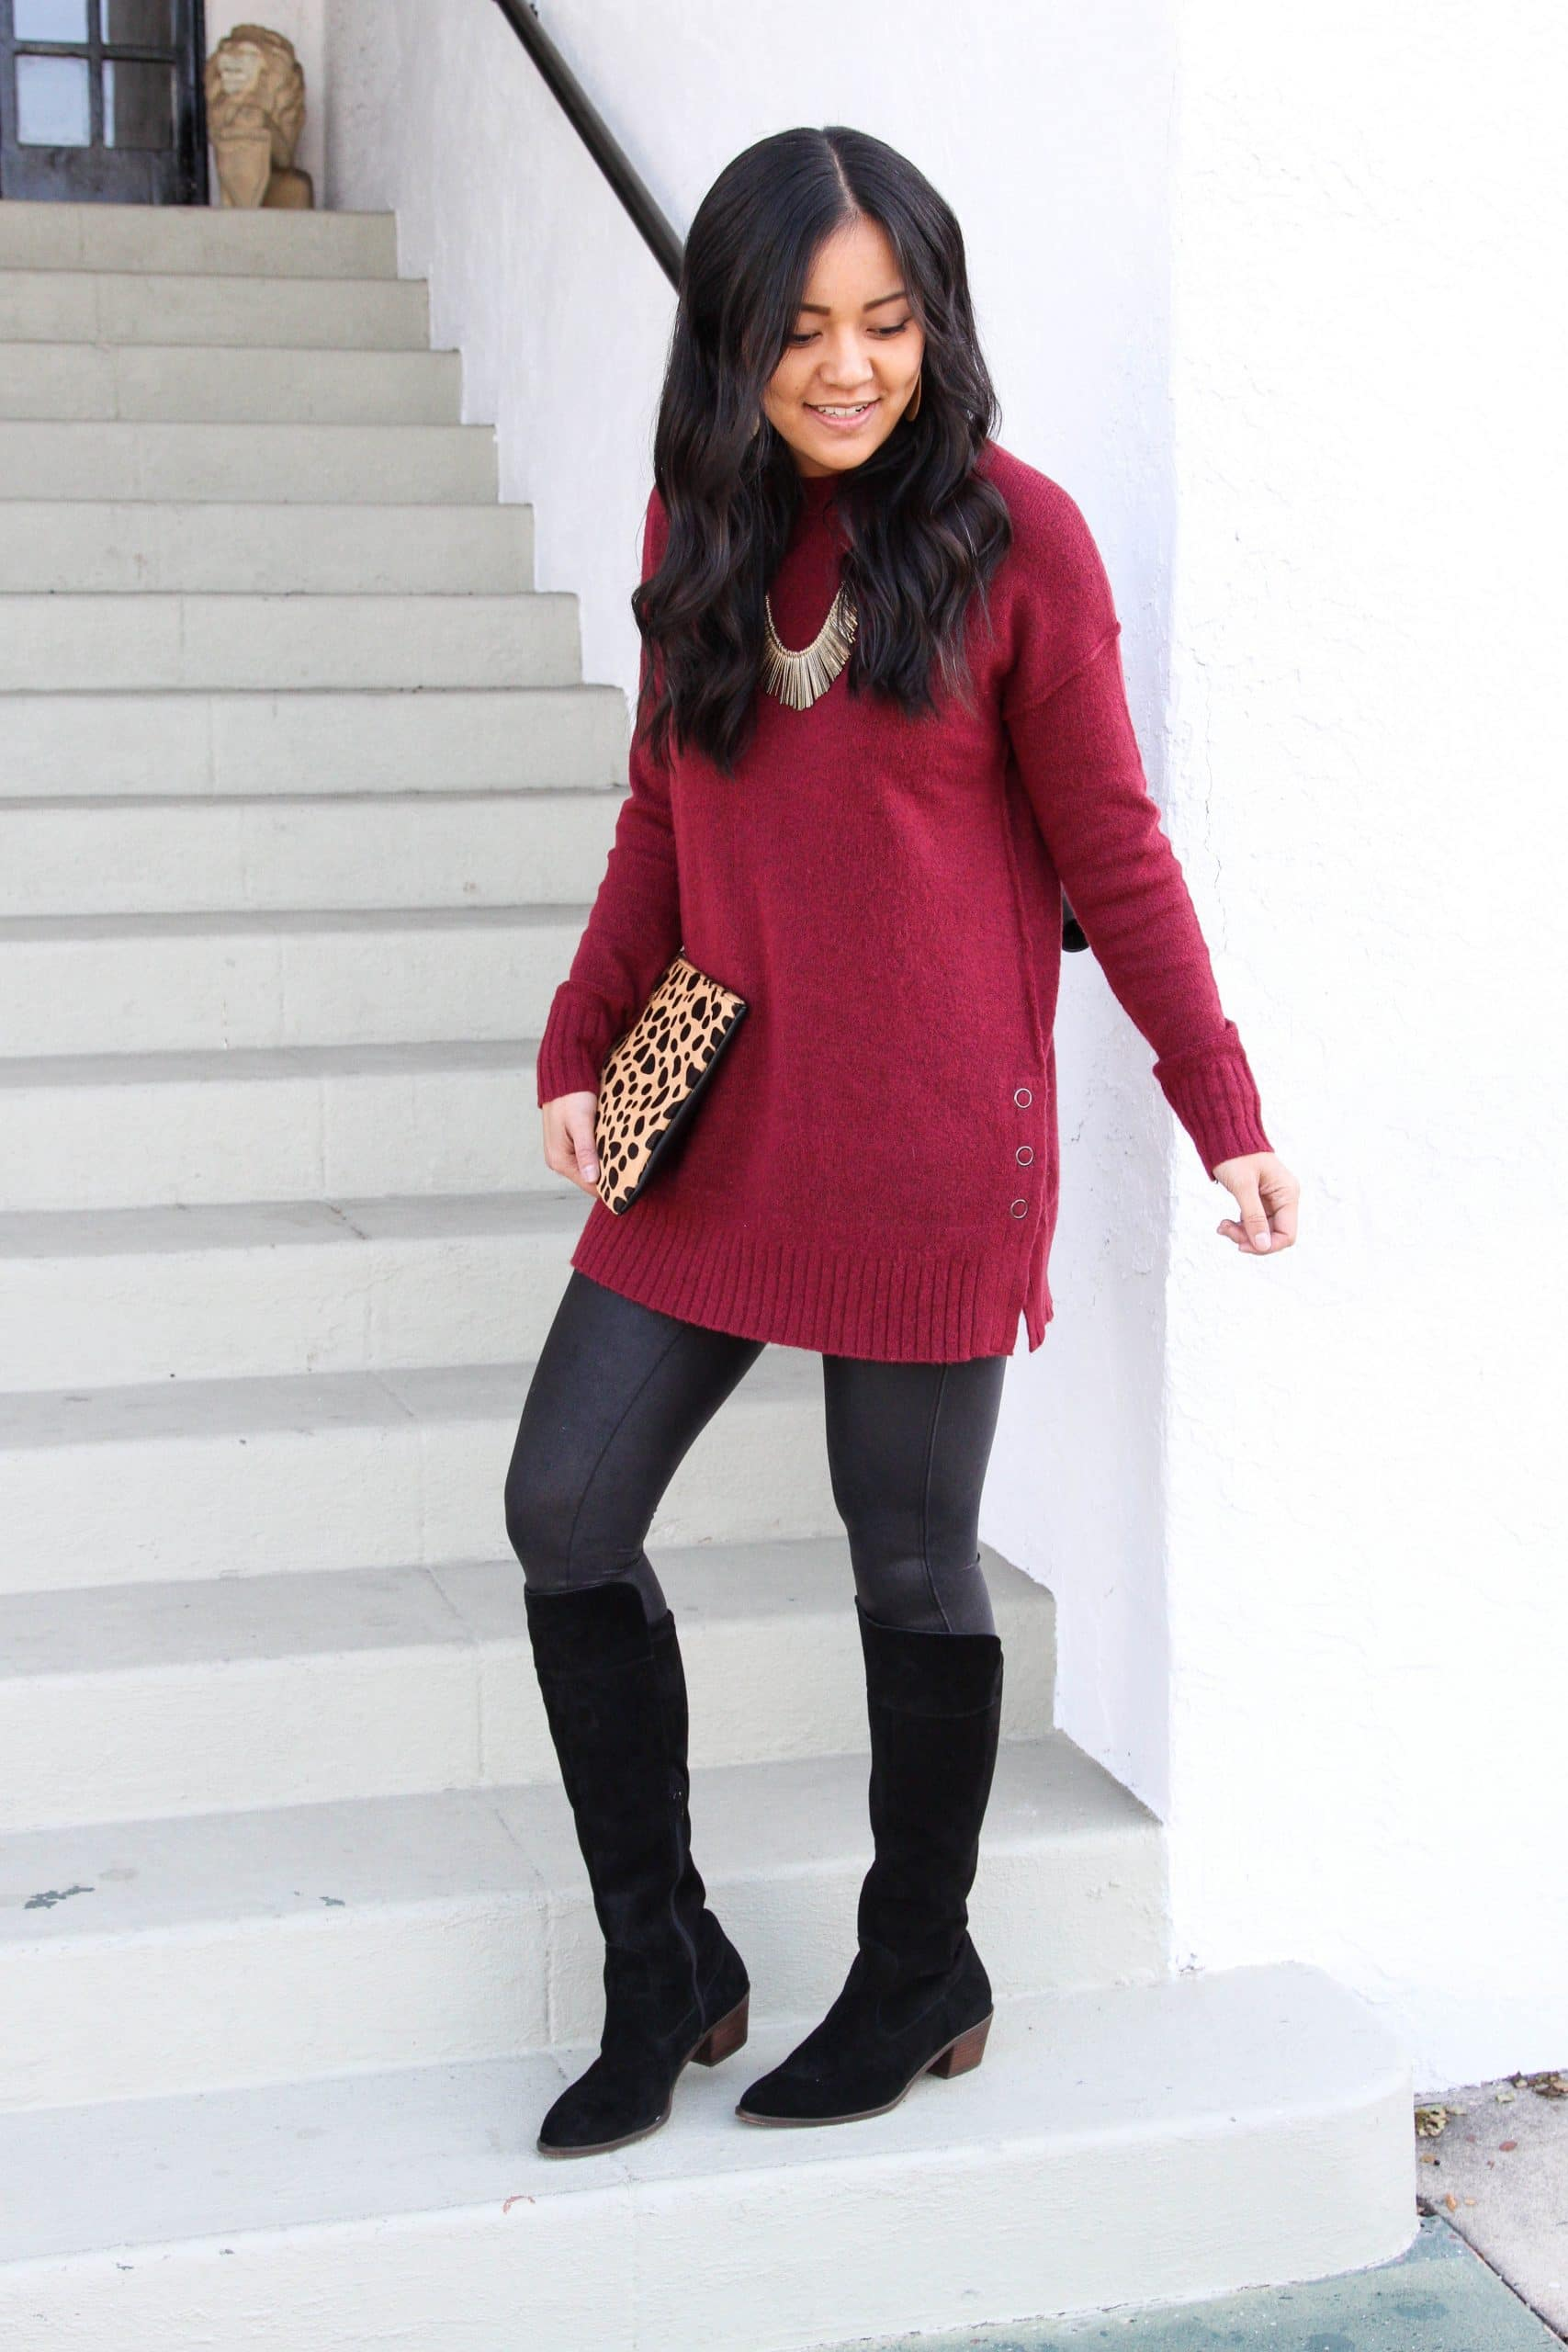 faux leather leggings + maroon sweater + black boots + leopard print clutch